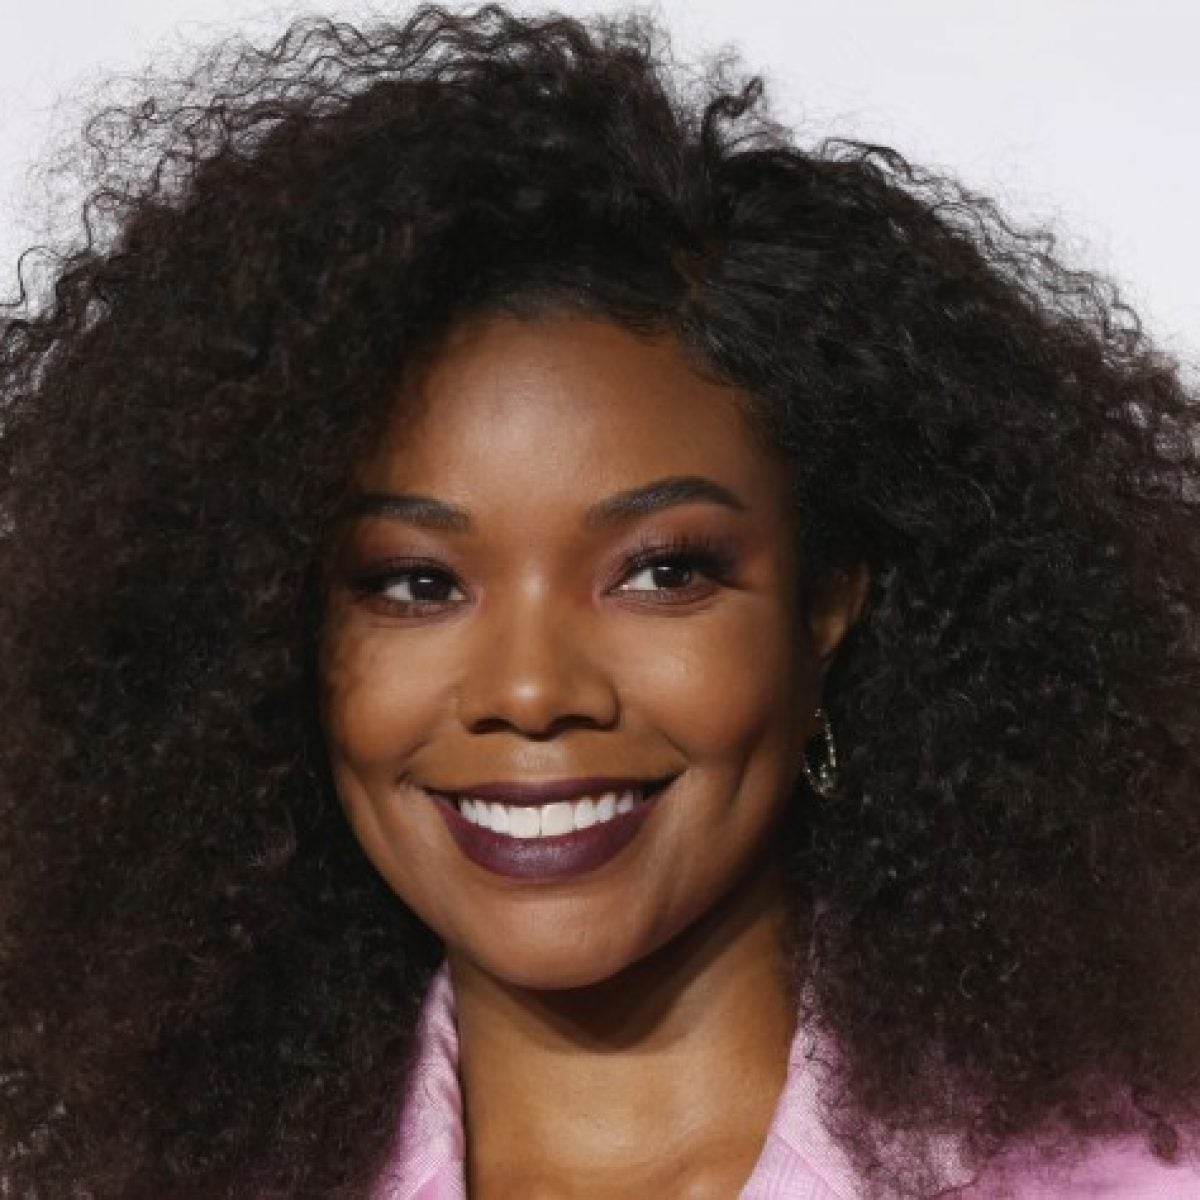 Gabrielle Union's Hairstylist Larry Sims On Removing Weaves And Wigs Properly